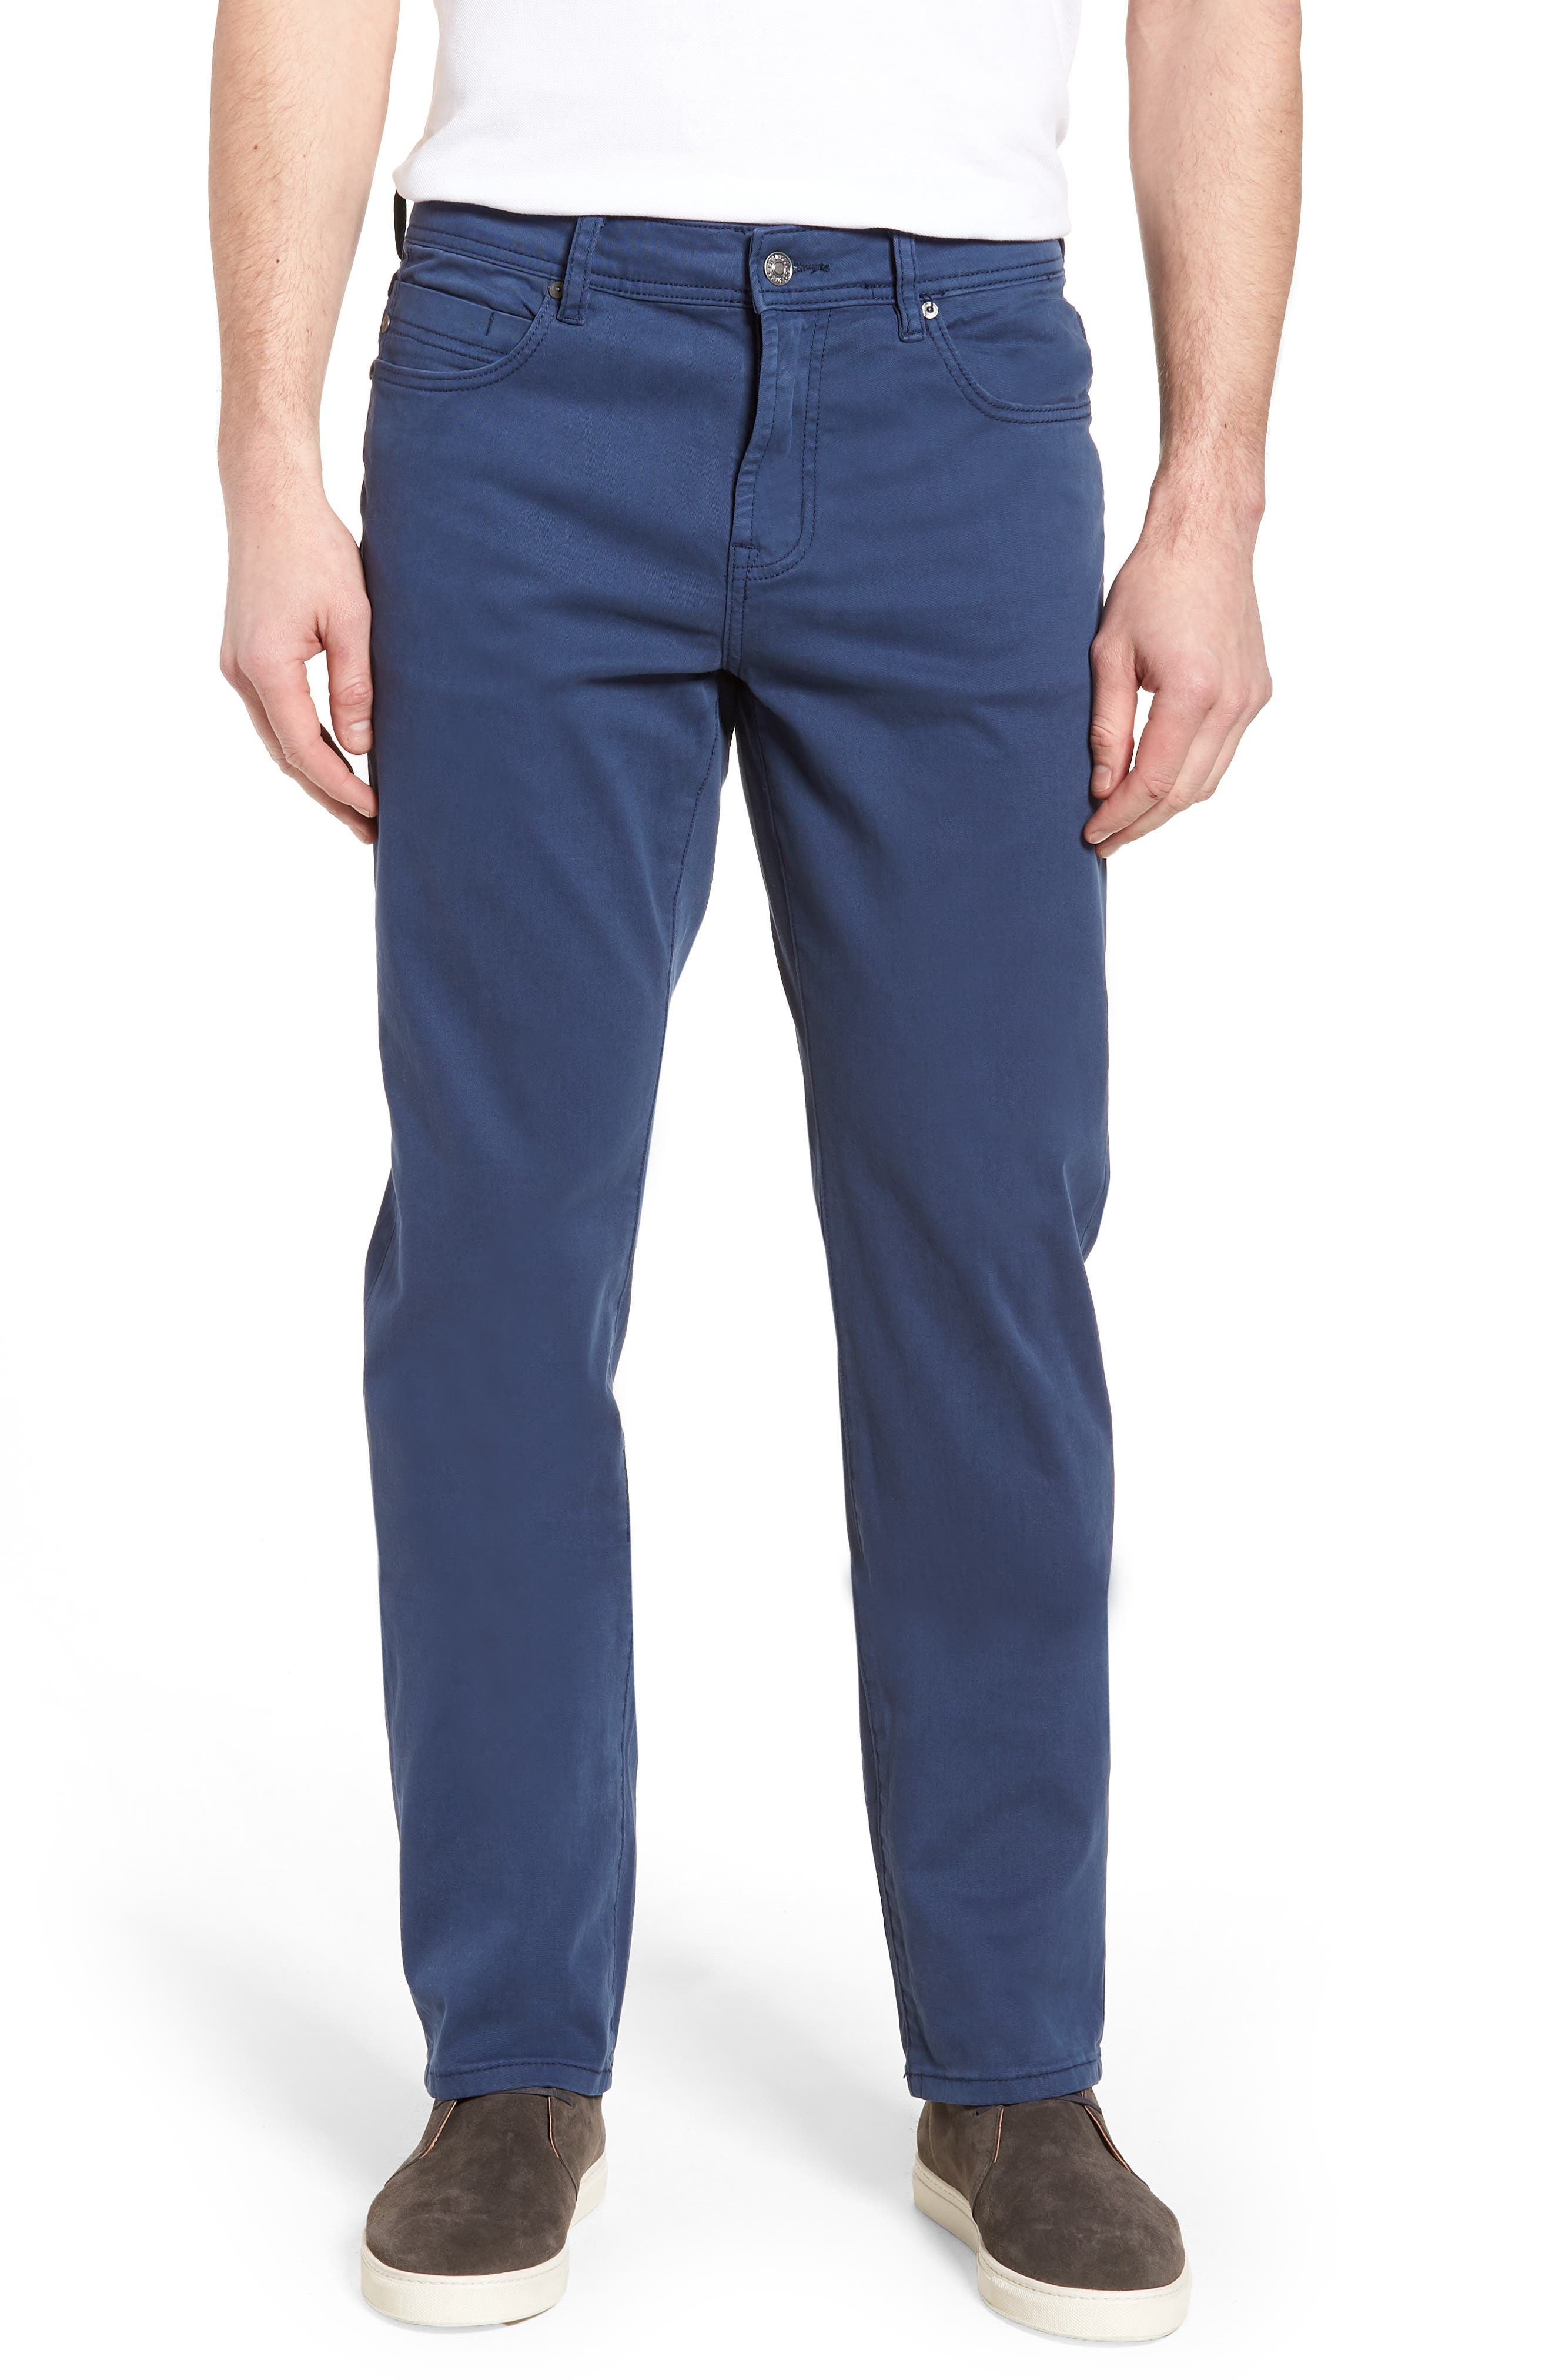 Jeans Co. Regent Relaxed Straight Leg Jeans,                             Main thumbnail 1, color,                             Blue Twilight